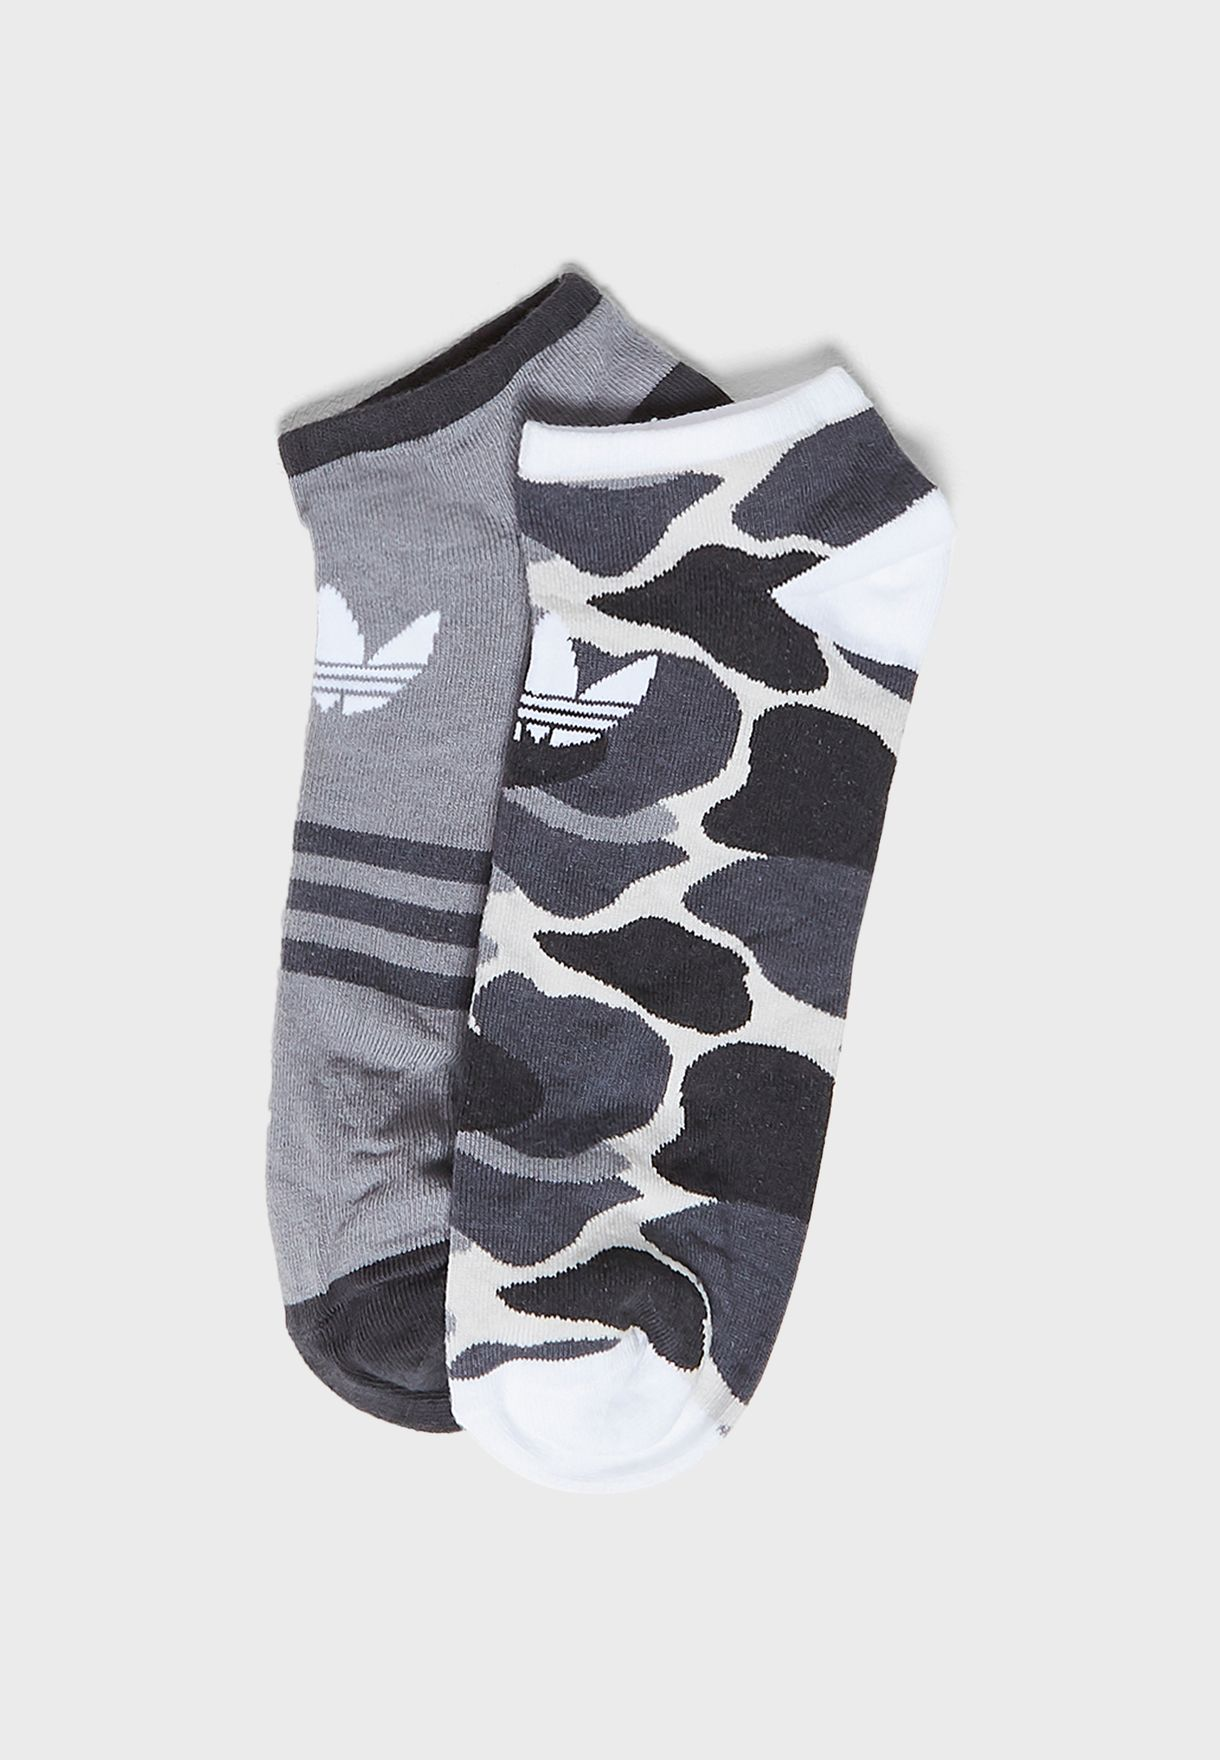 huge selection of 83021 61c89 Shop adidas Originals prints Trefoil Liner Camo Socks DH1020 for Men in  Saudi - AD478AT23HPG